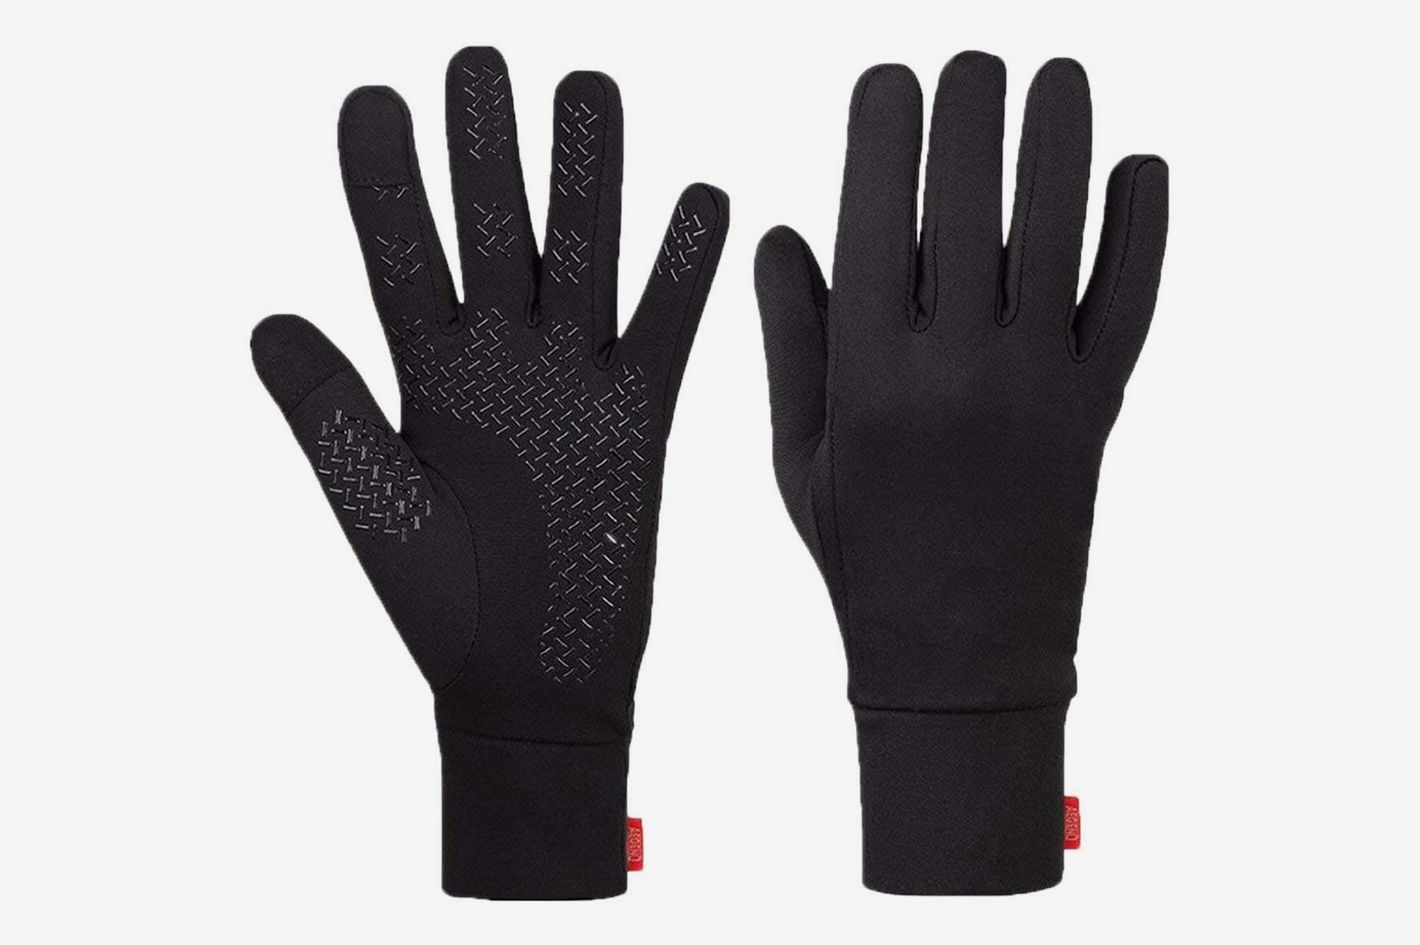 71094ab5ea3c8 Aegend Lightweight Touchscreen Running and Cycling Gloves